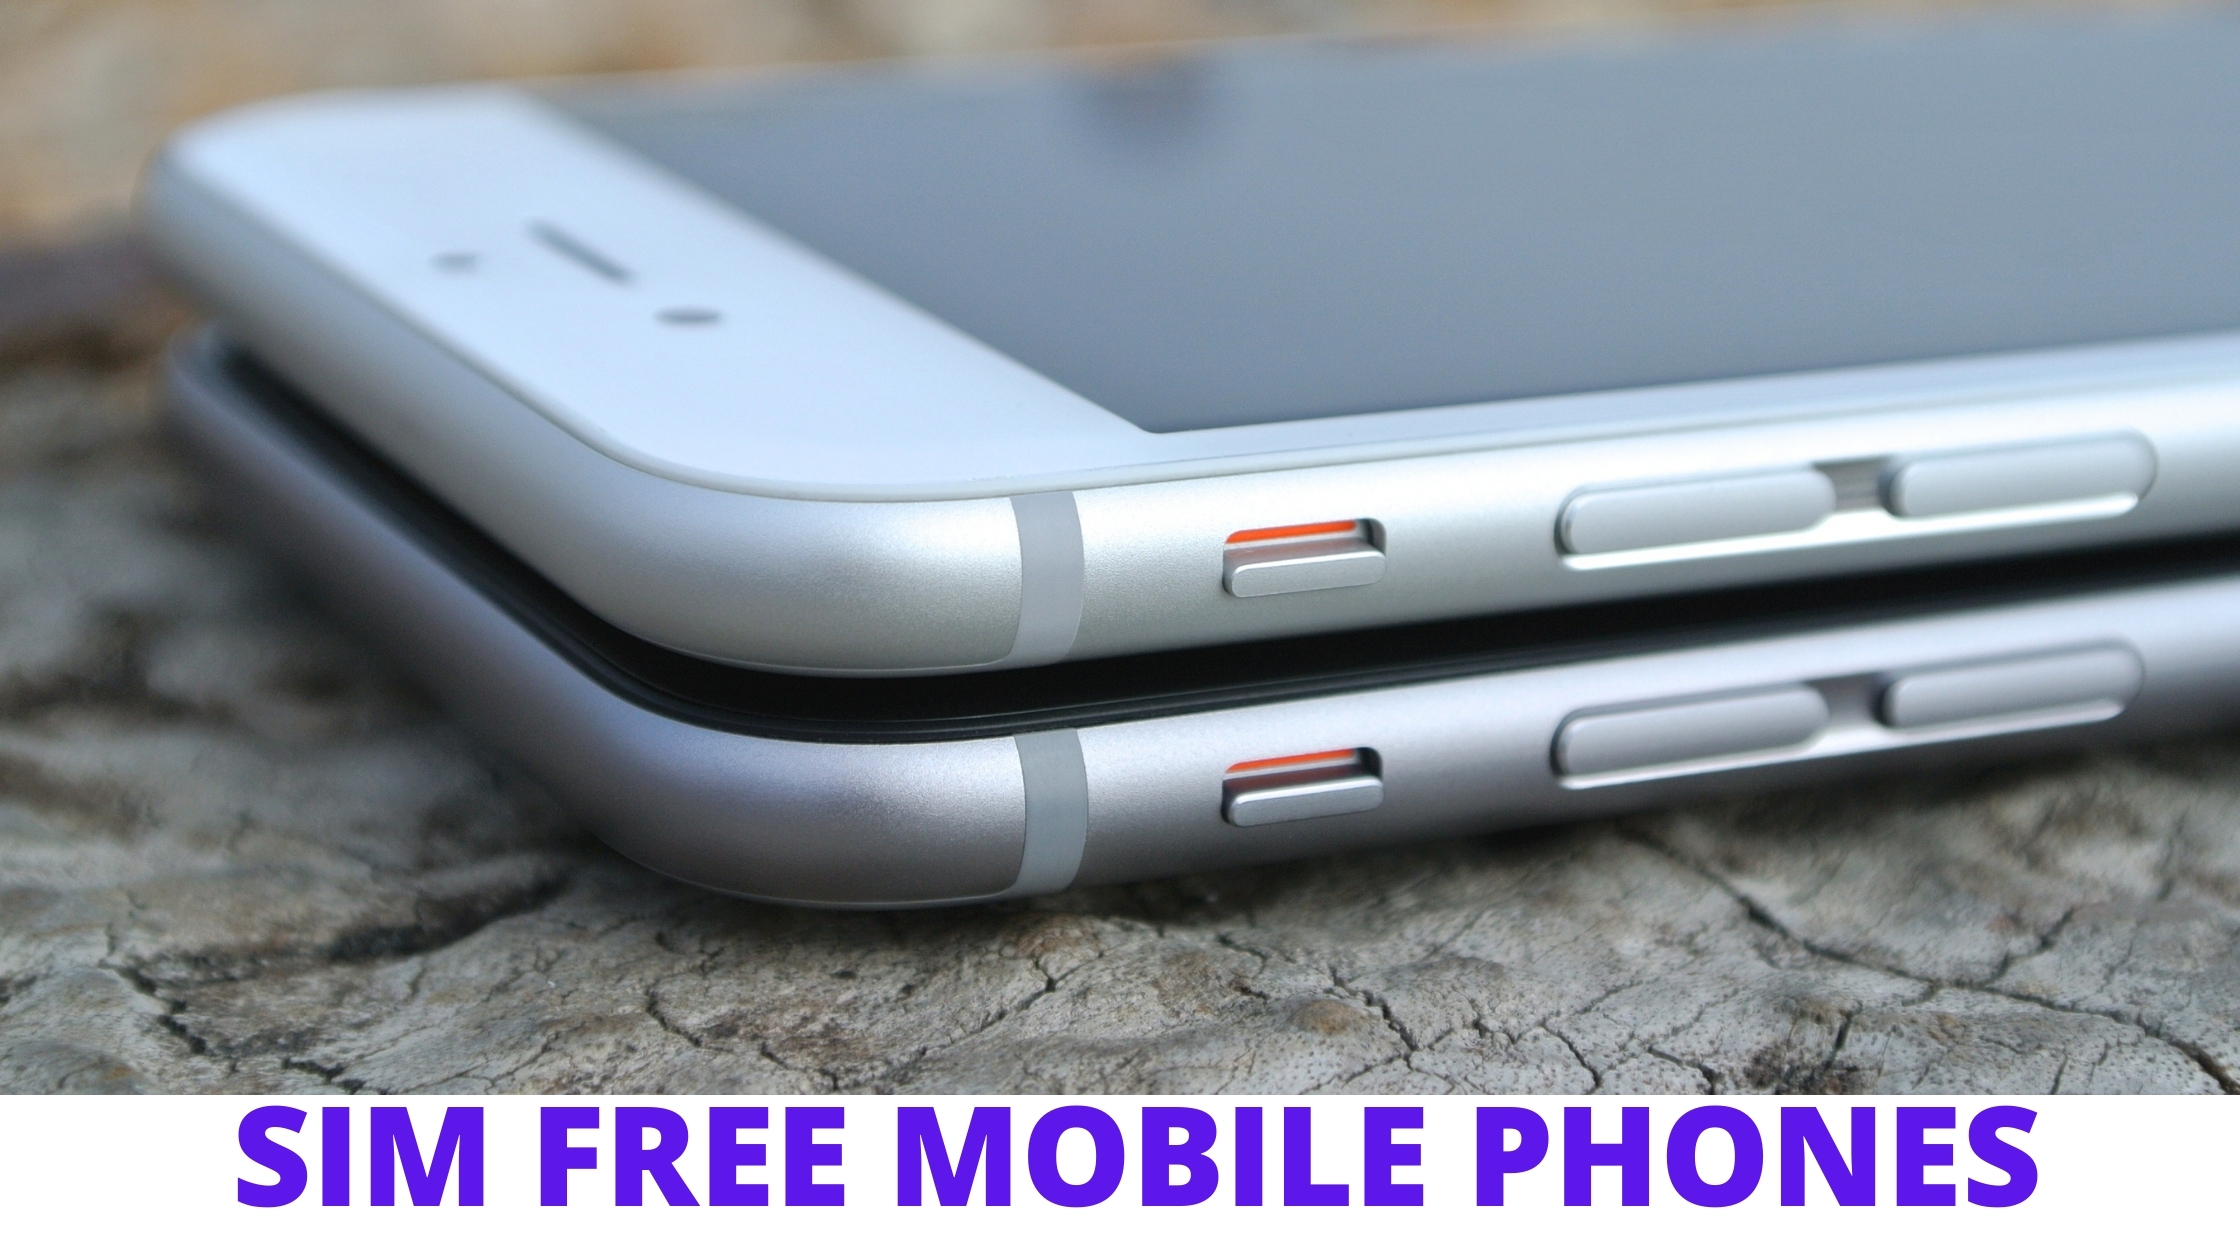 What does Sim free Mobile Phone Mean